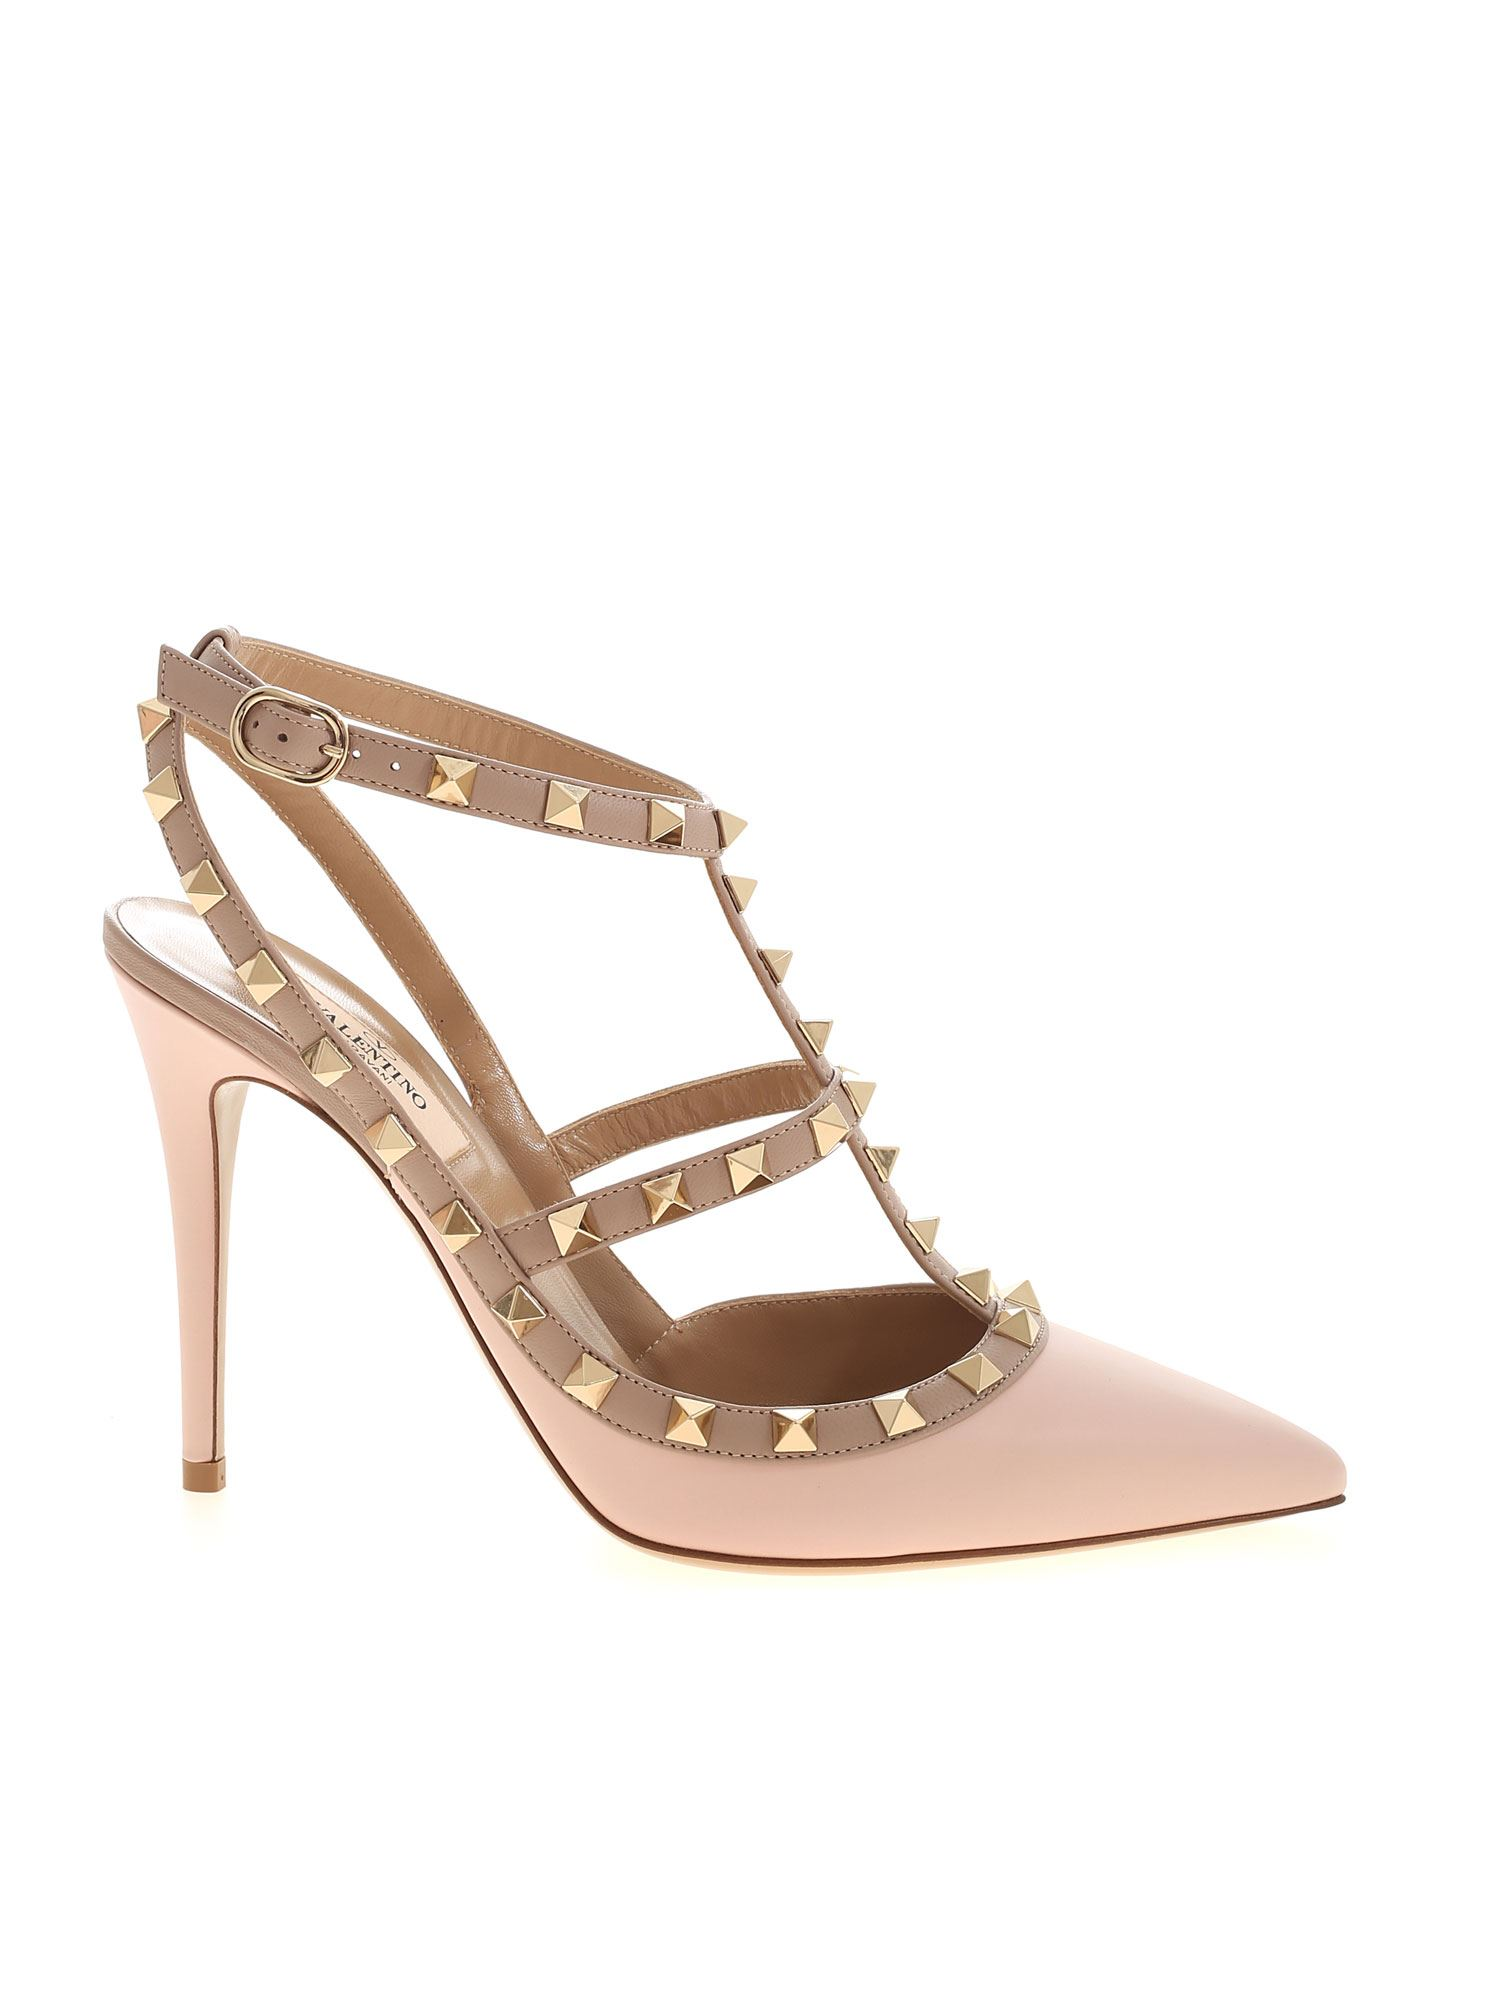 Valentino Garavani Ankle Straps In Pink With Straps And Studs